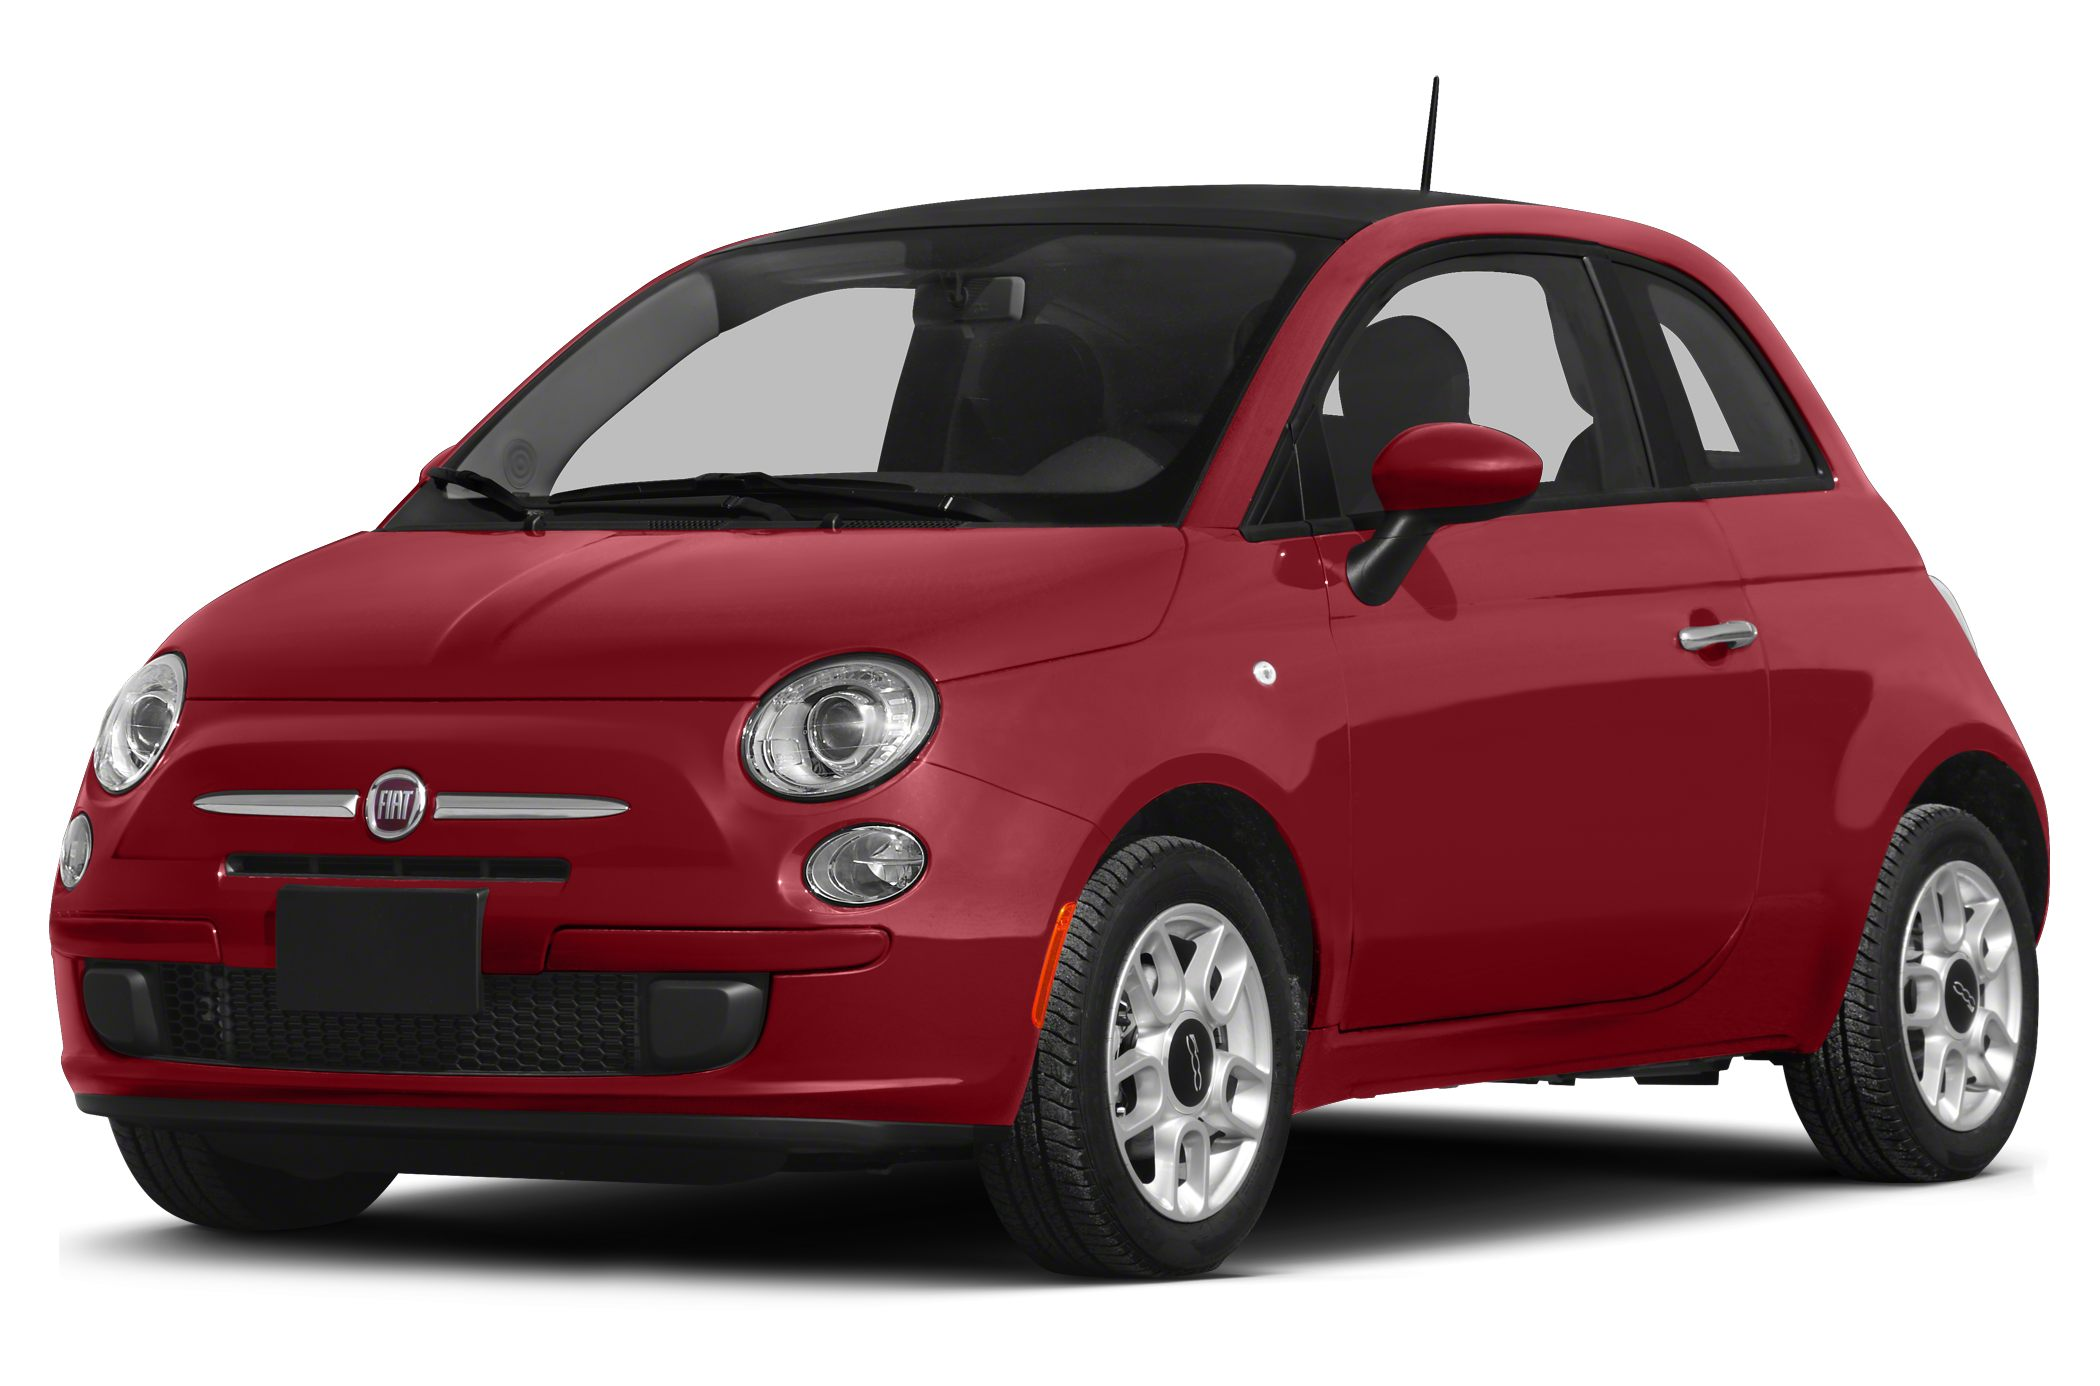 2014 Fiat 500 Sport Hatchback for sale in Alliance for $12,500 with 26,273 miles.